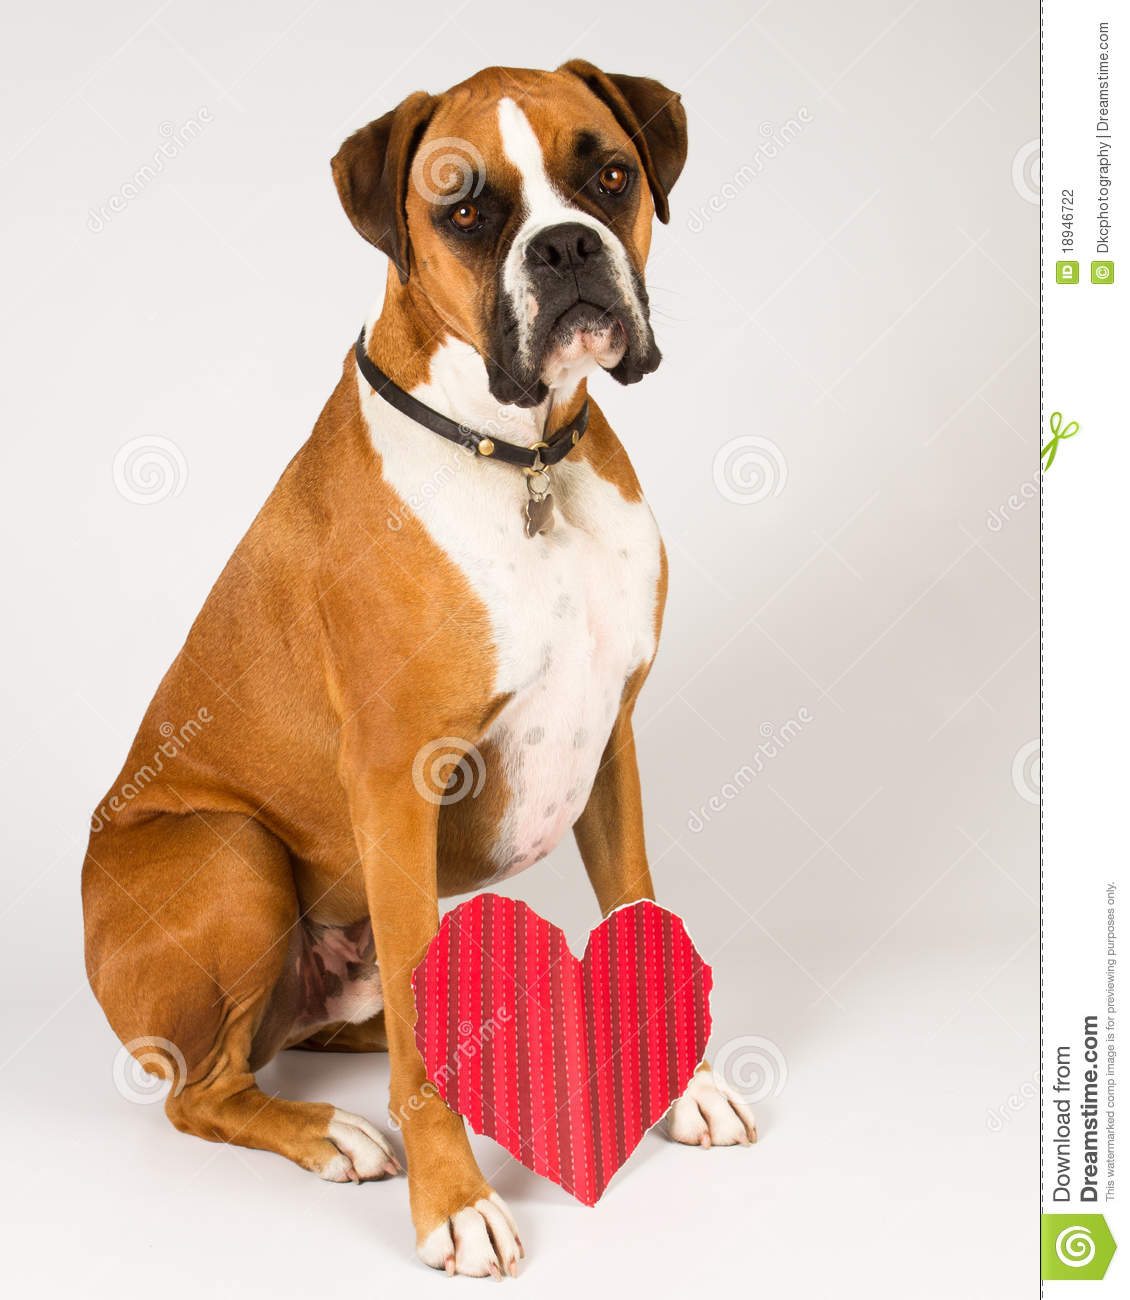 Boxer Dog Heart Image Wiring Diagrams Solar Power Inverter T K Hareendran 4047 Inverters Chargers With A Stock Photo Of Fawn Flashy 18946722 Rh Dreamstime Com Happy